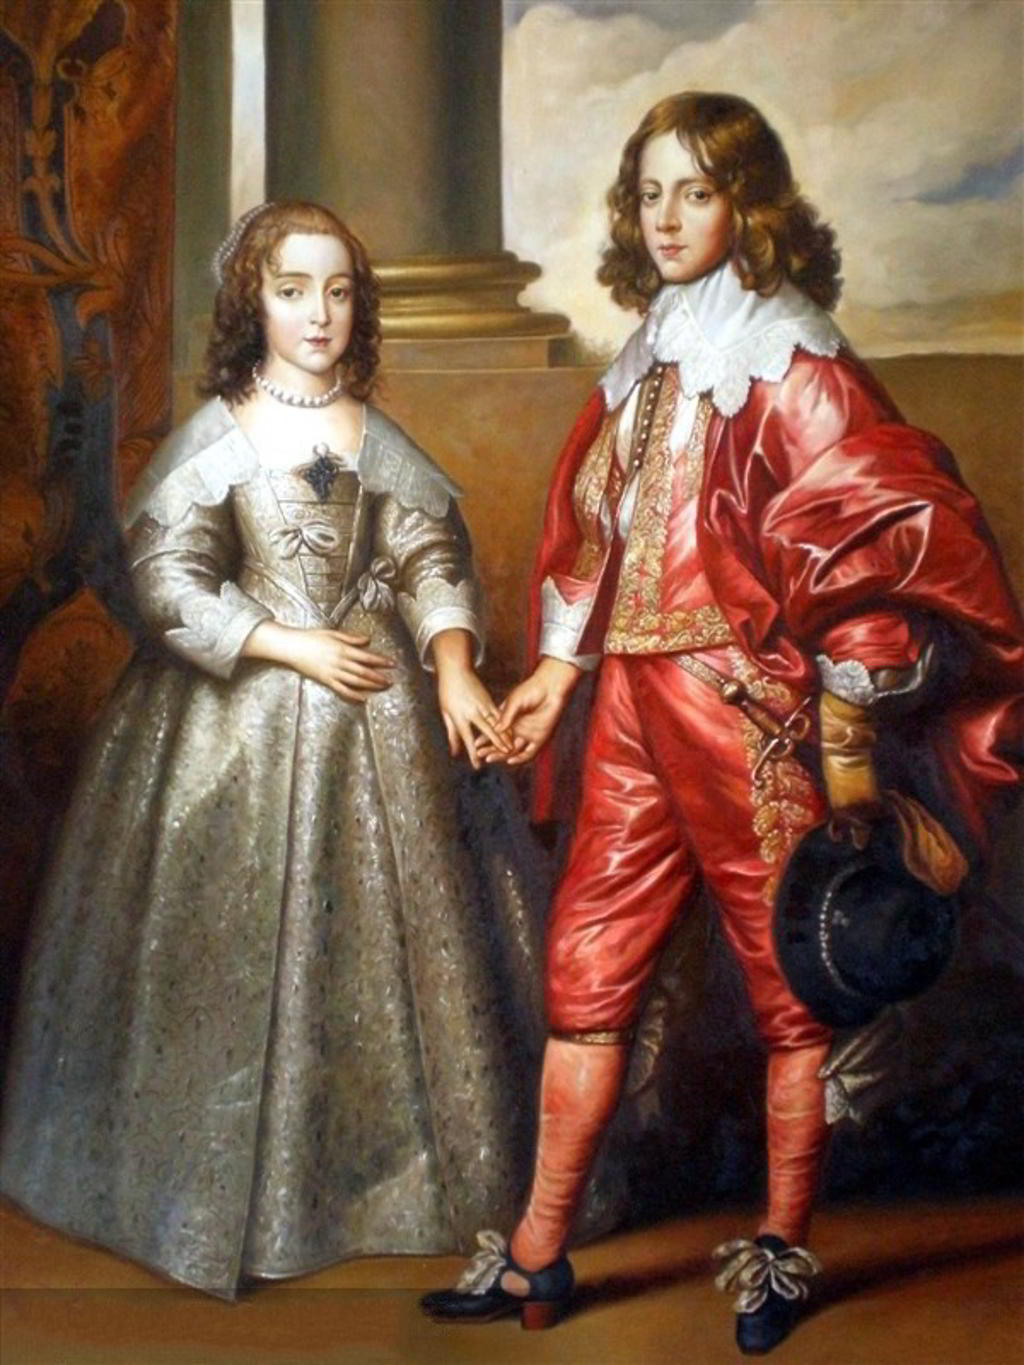 Anthonis van Dyck - William II and his bride Mary Stuart (1641)